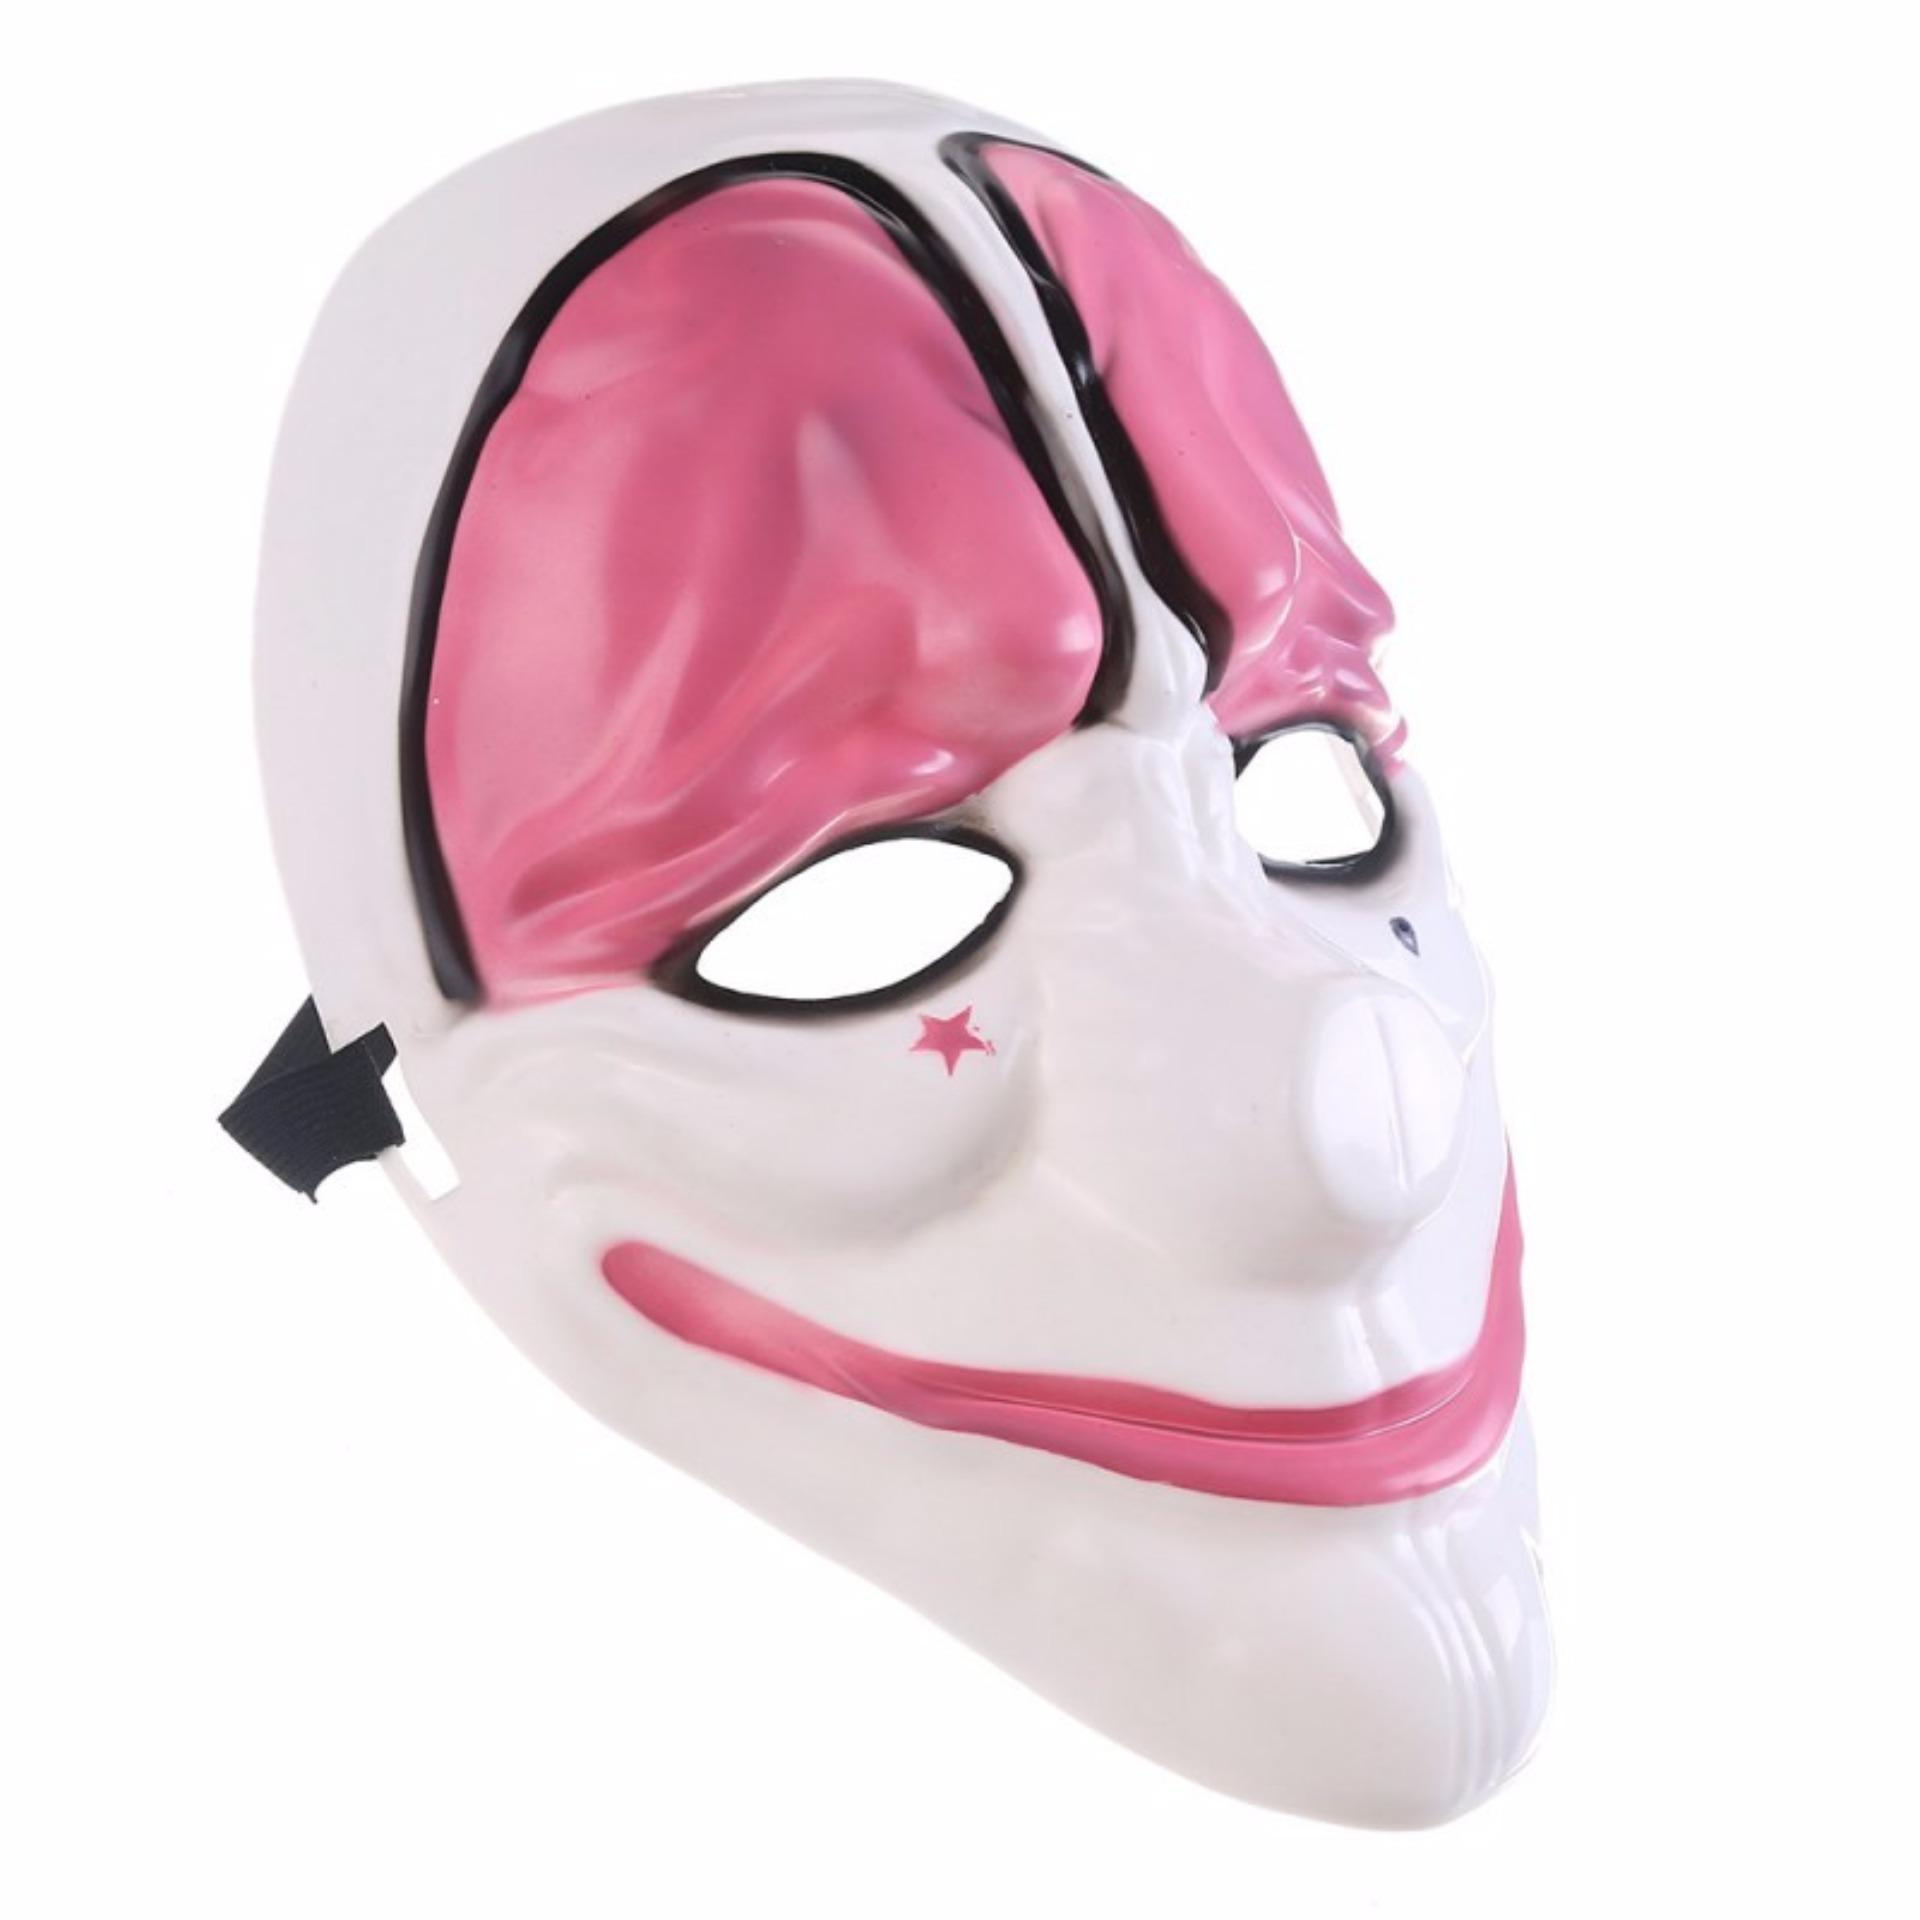 Plastik Tahan Lama Topeng Halloween Pesta Kostum Cosplay Topeng Vendetta Mask Occupy Anonymous Cosplay Putih; Page - 3. Topeng vendetta. Source · Topeng ...